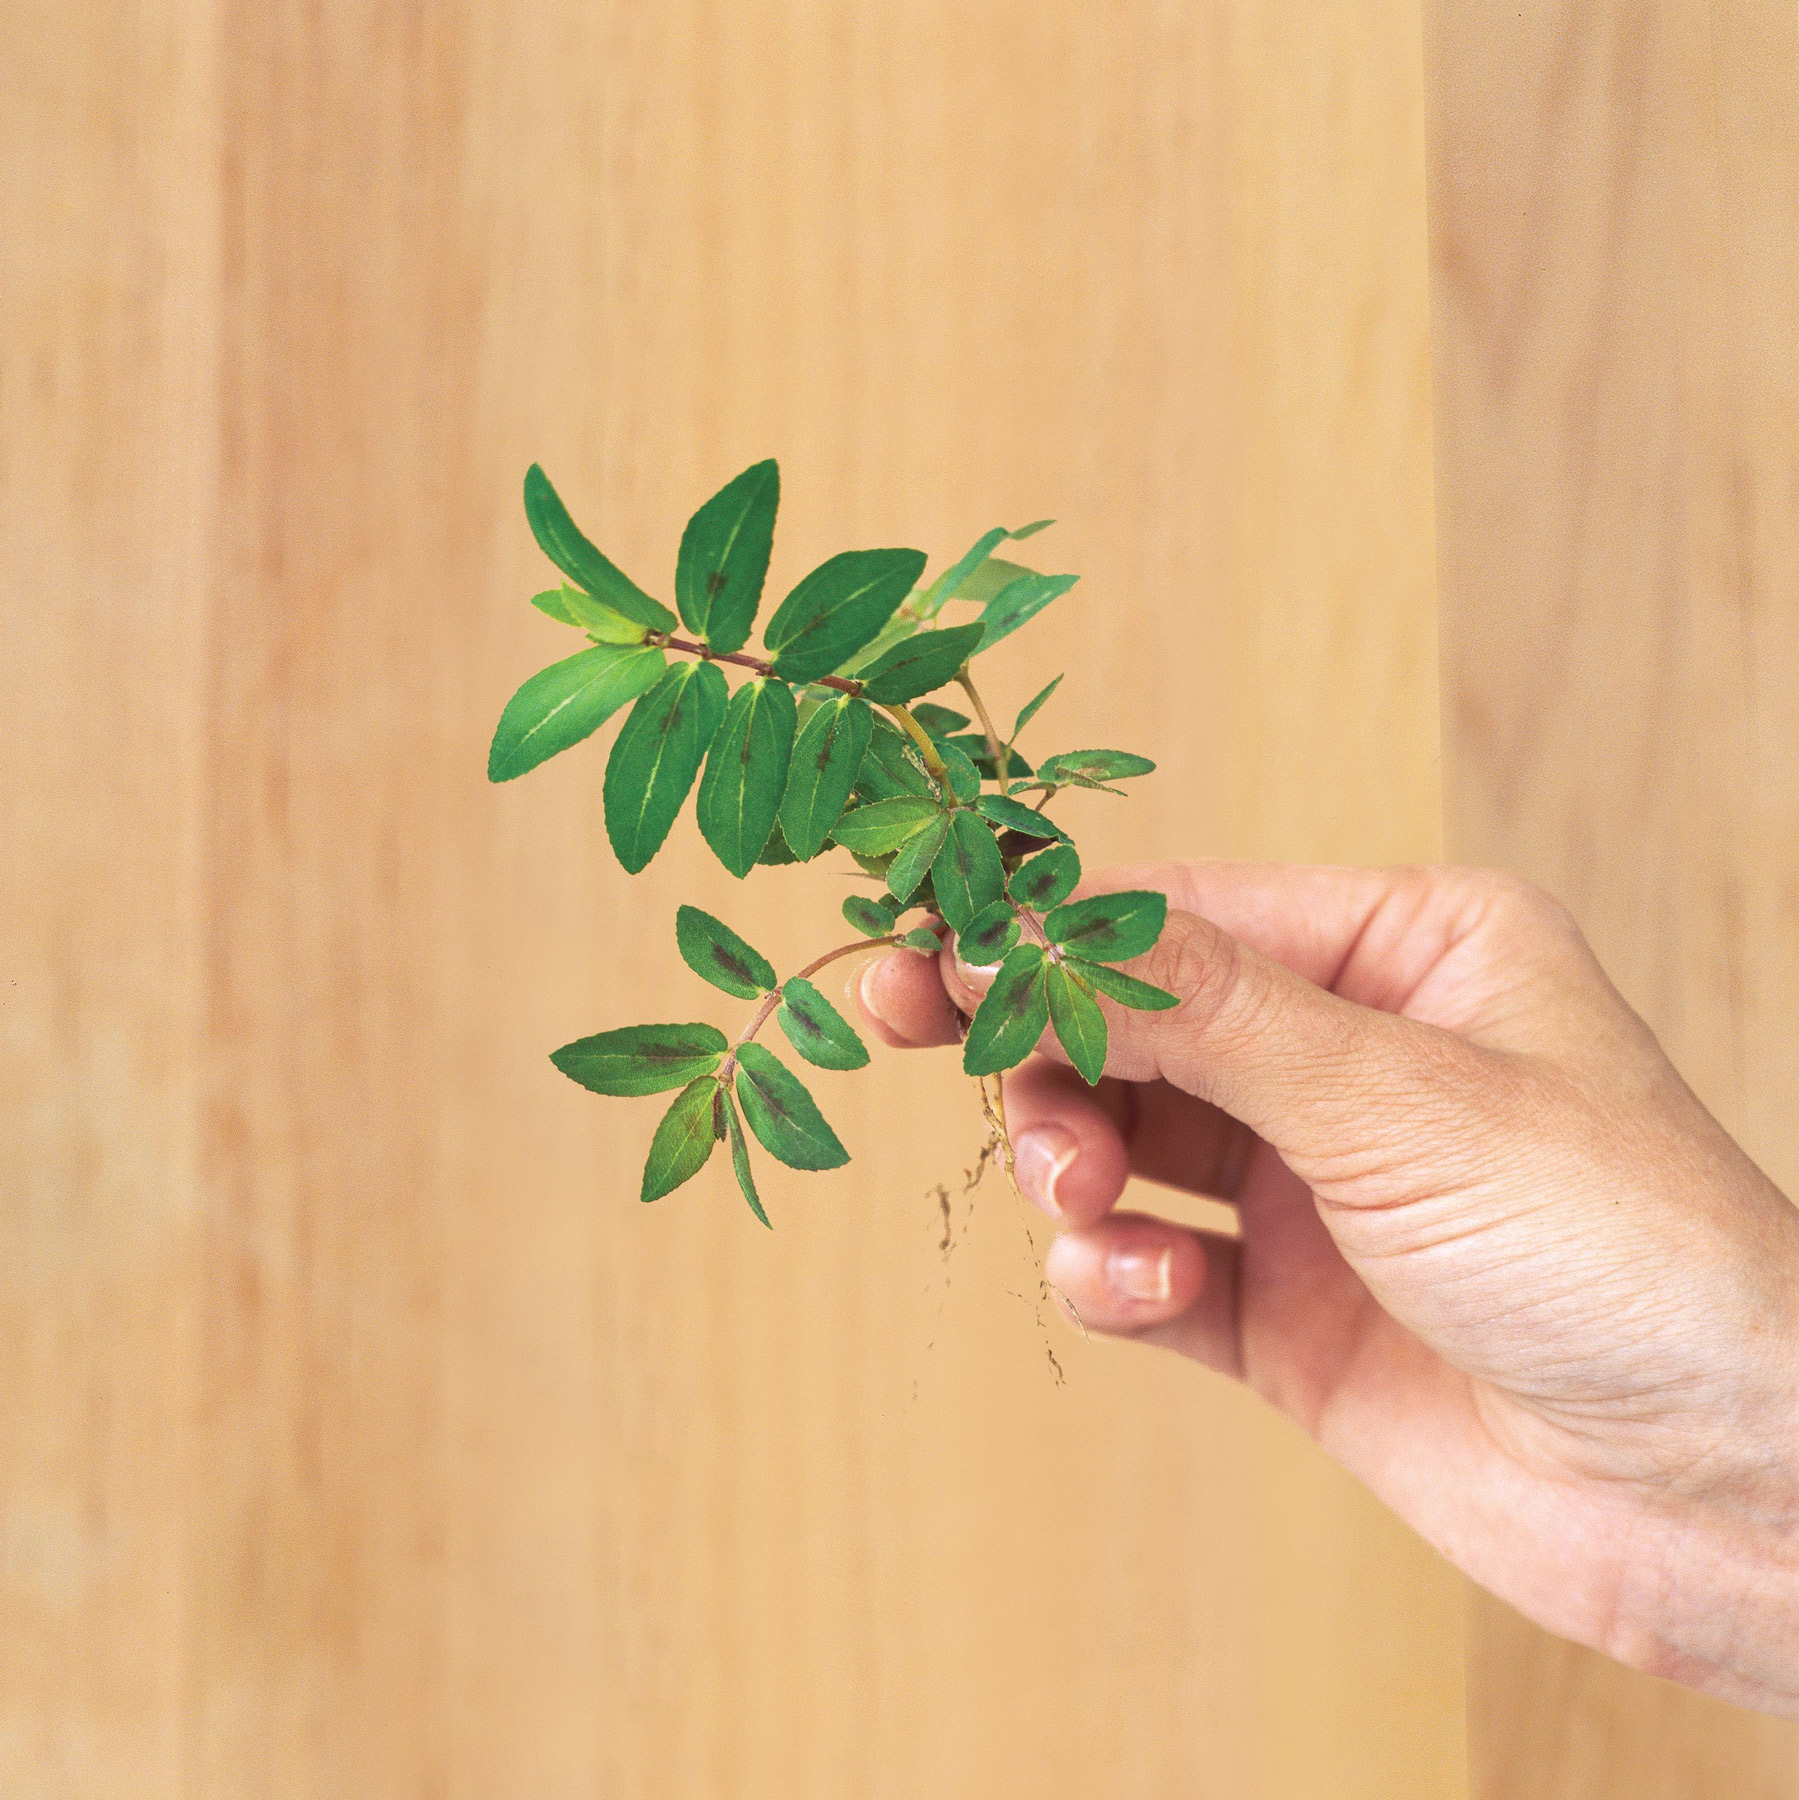 hand holding uprooted prostrate spurge weed